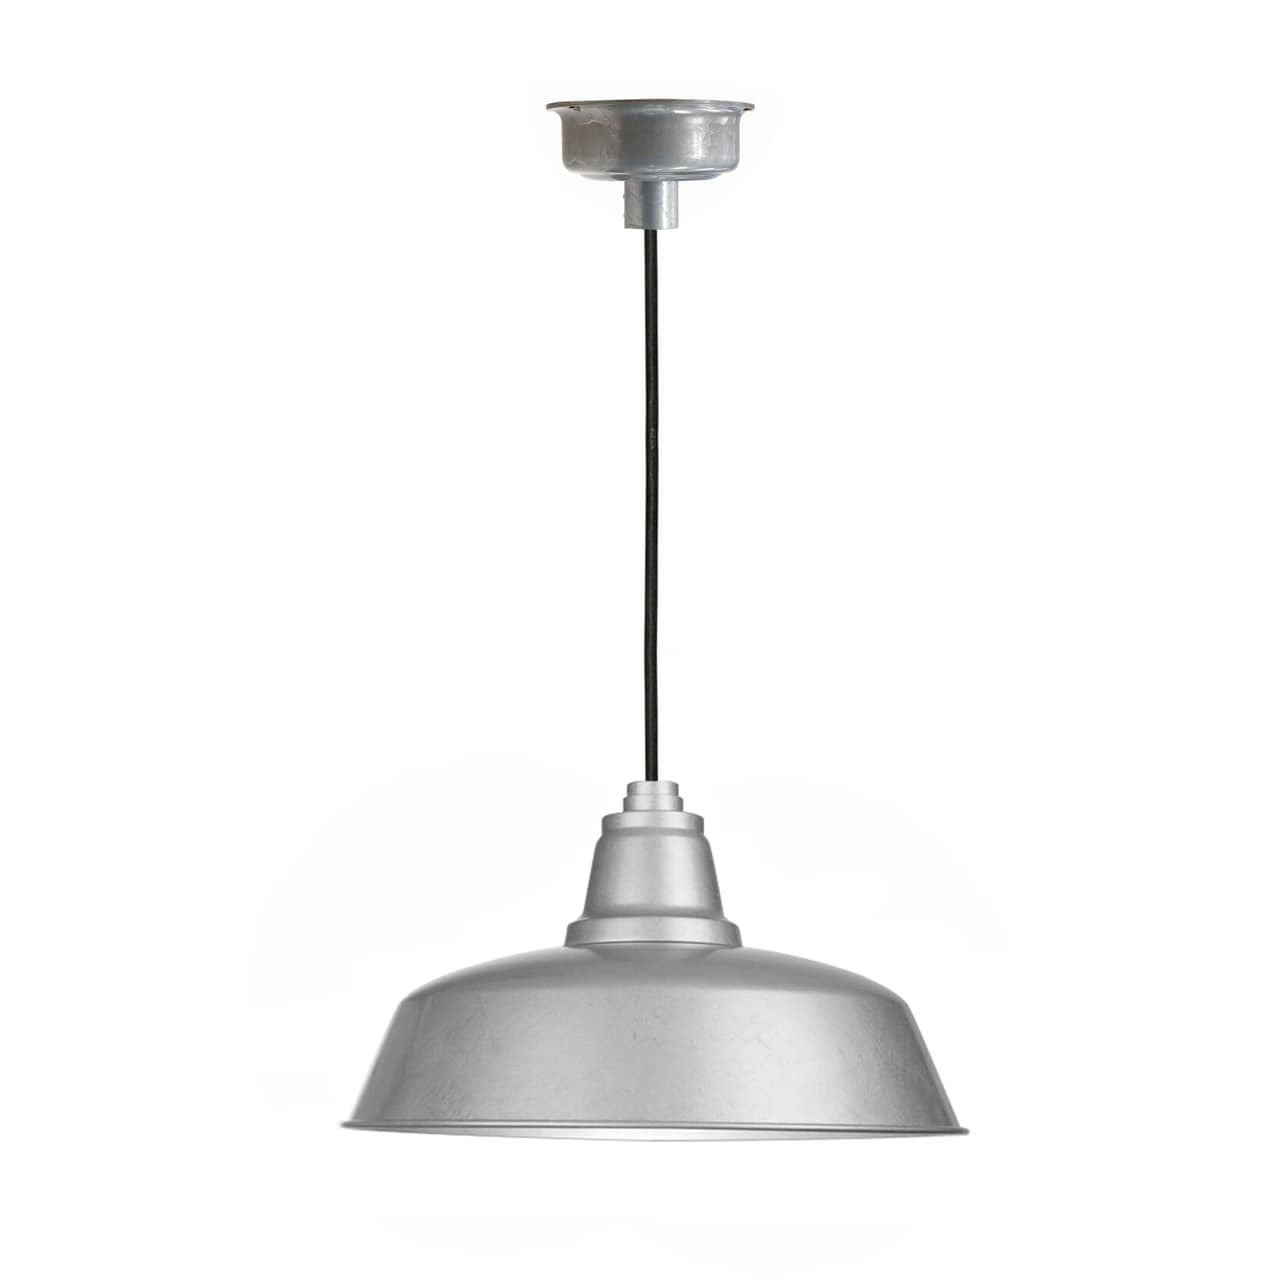 10 Goodyear Led Pendant Light In Galvanized Silver Cocoweb Quality Led Lighting Specialists